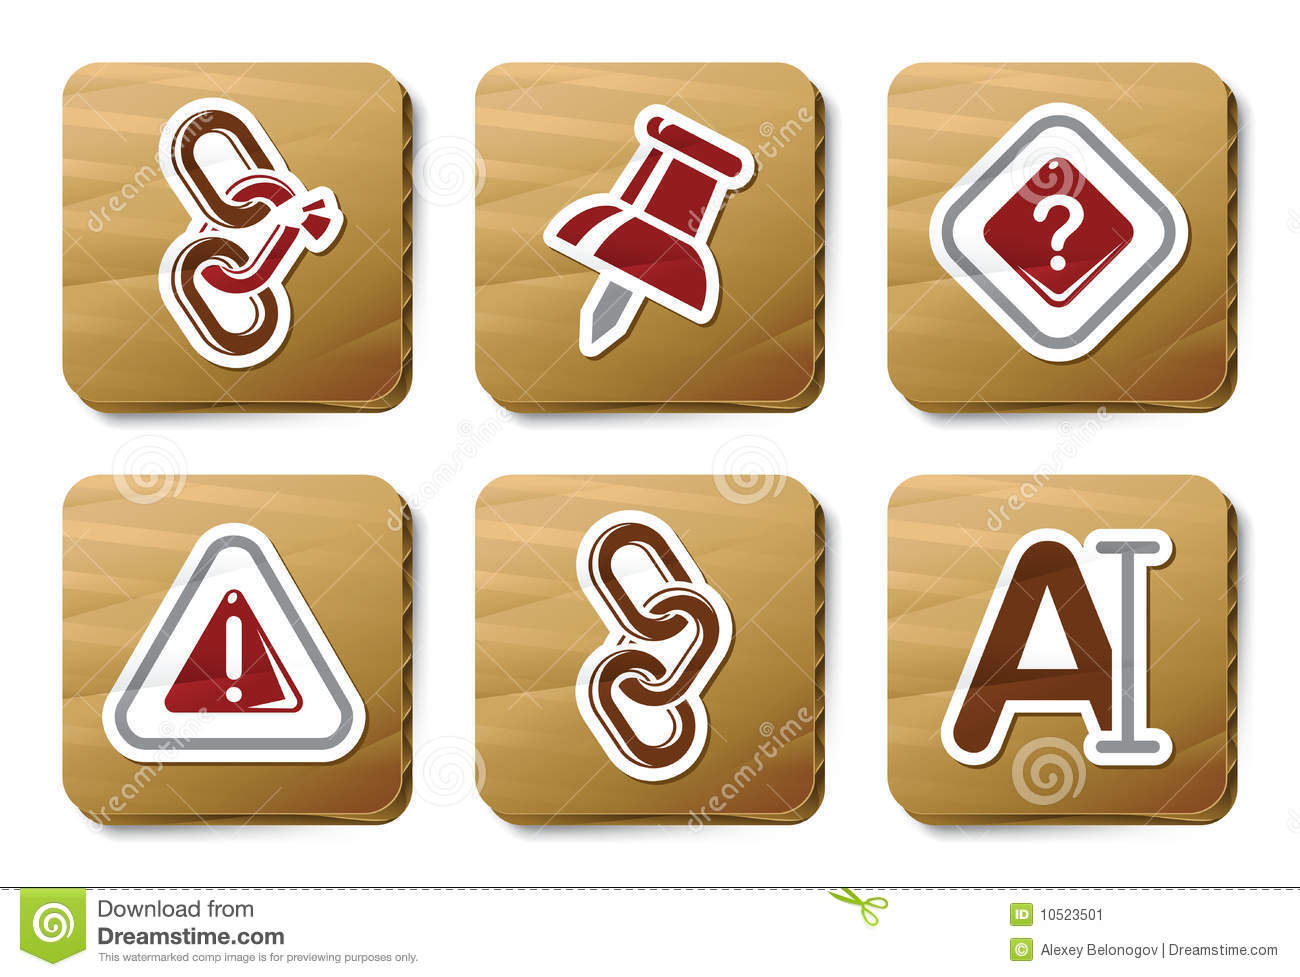 Toolbar and Interface icons   Cardboard series